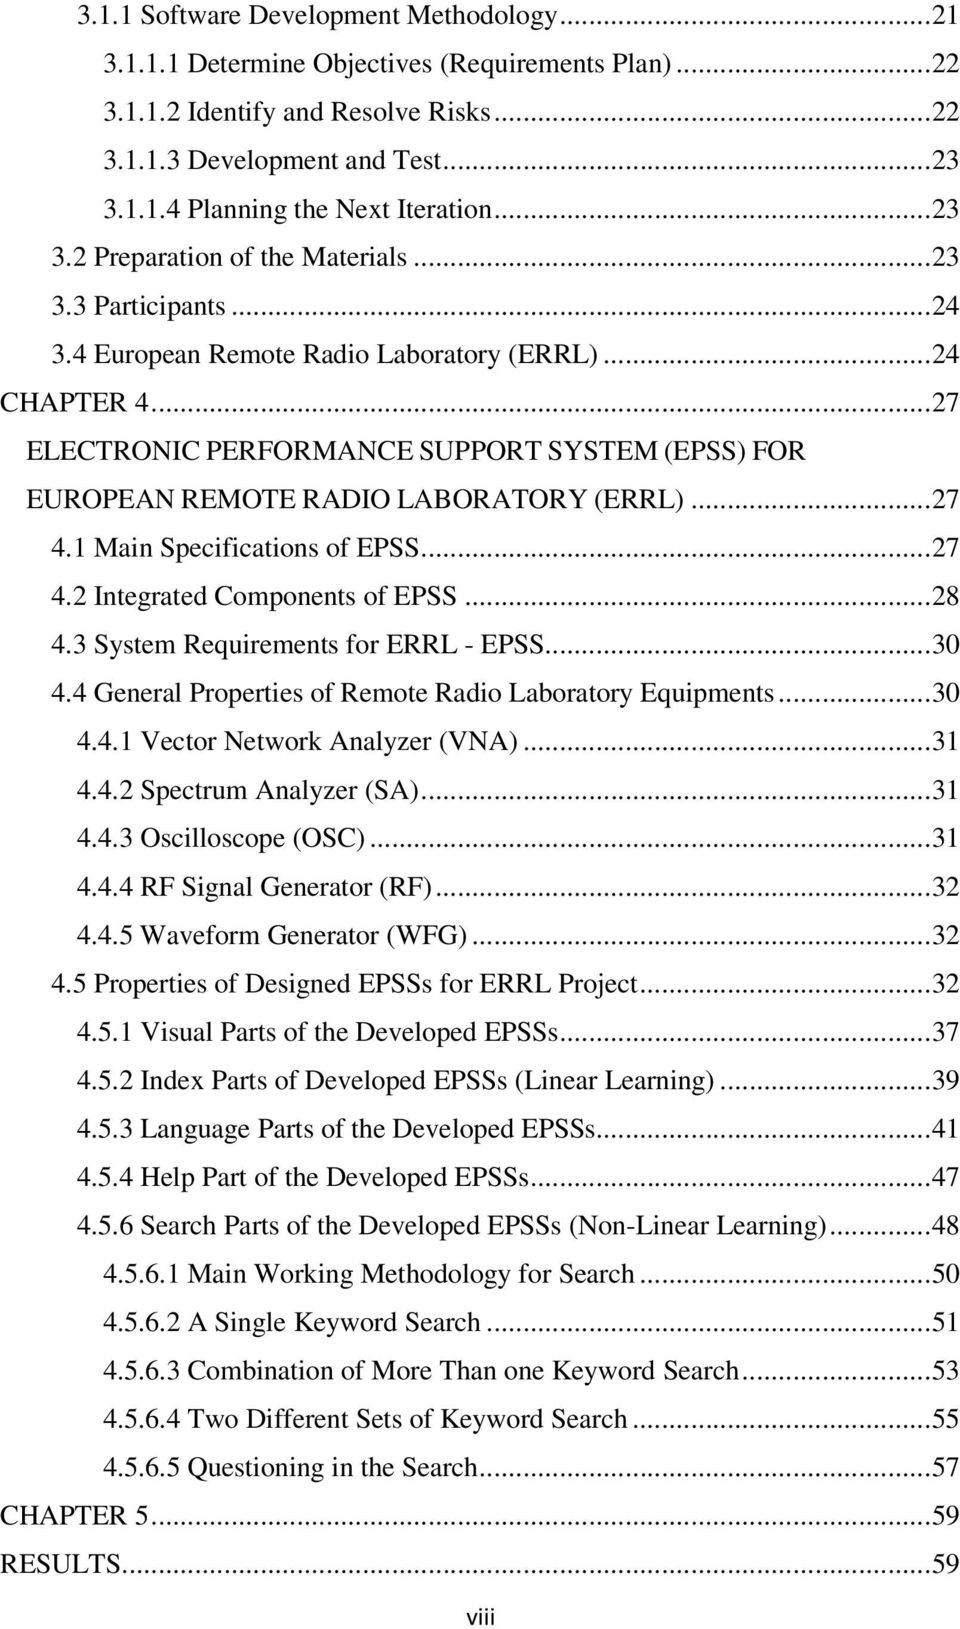 .. 27 ELECTRONIC PERFORMANCE SUPPORT SYSTEM (EPSS) FOR EUROPEAN REMOTE RADIO LABORATORY (ERRL)... 27 4.1 Main Specifications of EPSS... 27 4.2 Integrated Components of EPSS... 28 4.